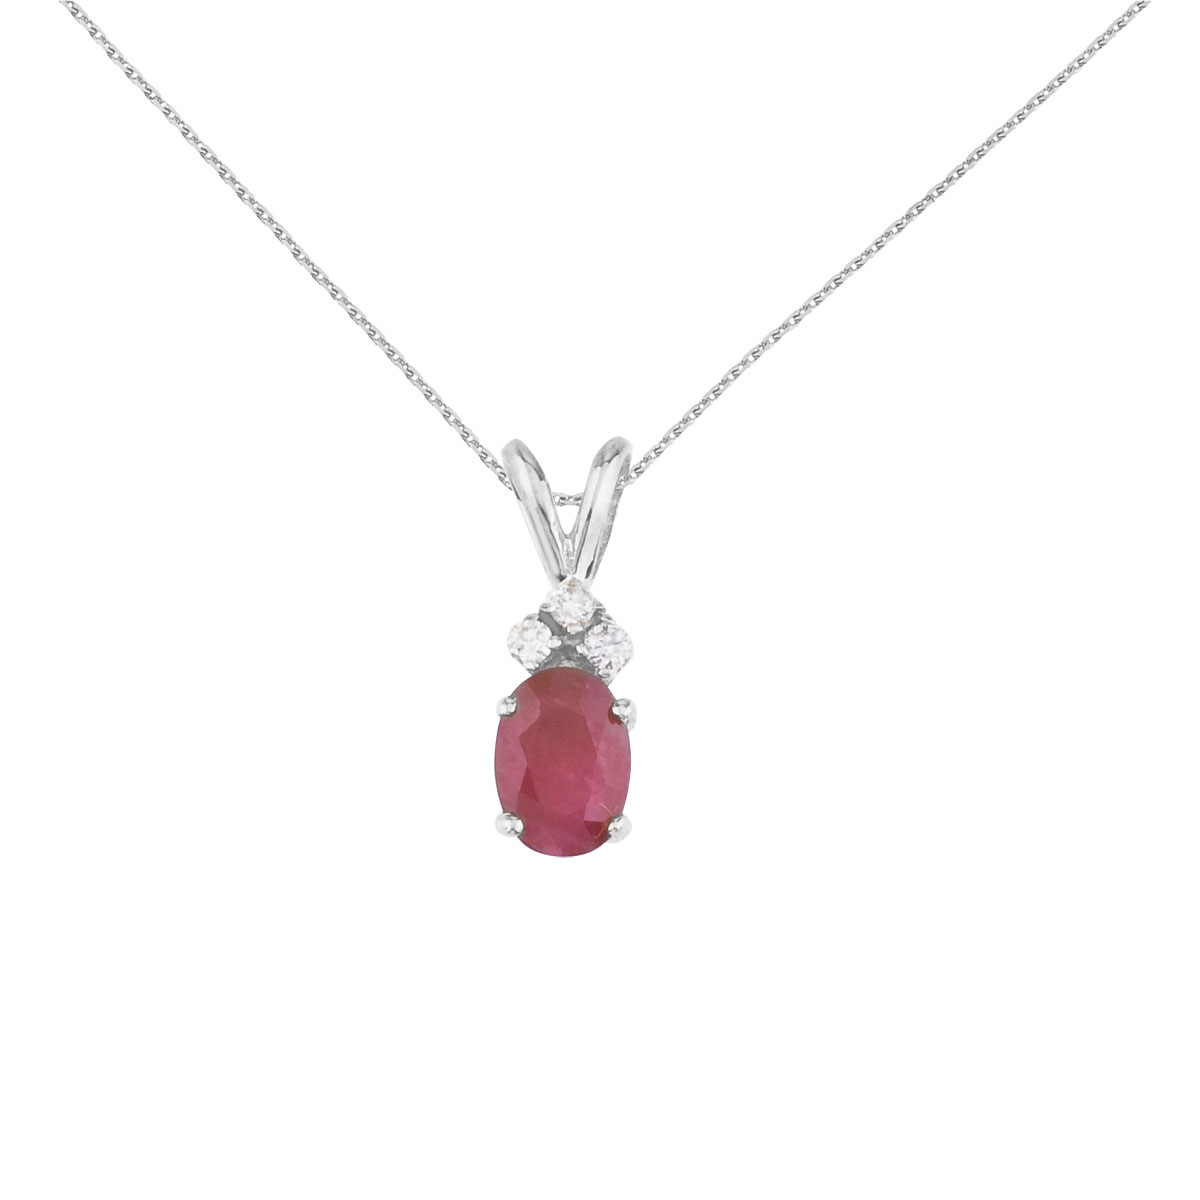 7x5 mm oval natural ruby pendant topped with 3 bright diamonds set in 14k white gold.